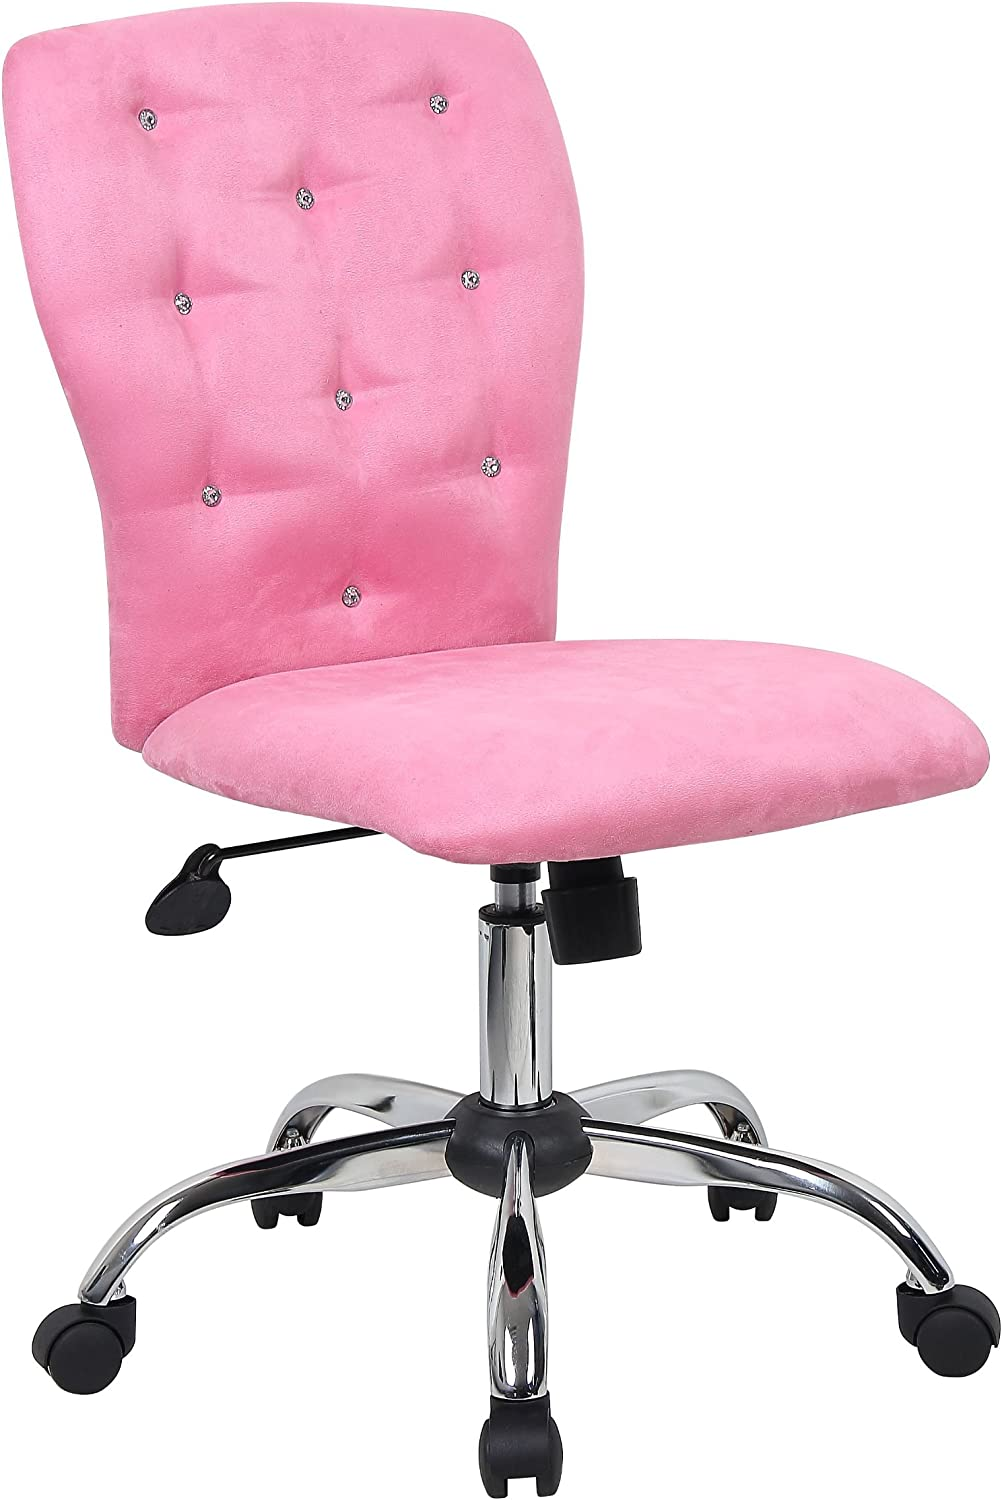 Boss Office Products Tiffany Office Chair – A modern office chair covered with microfiber